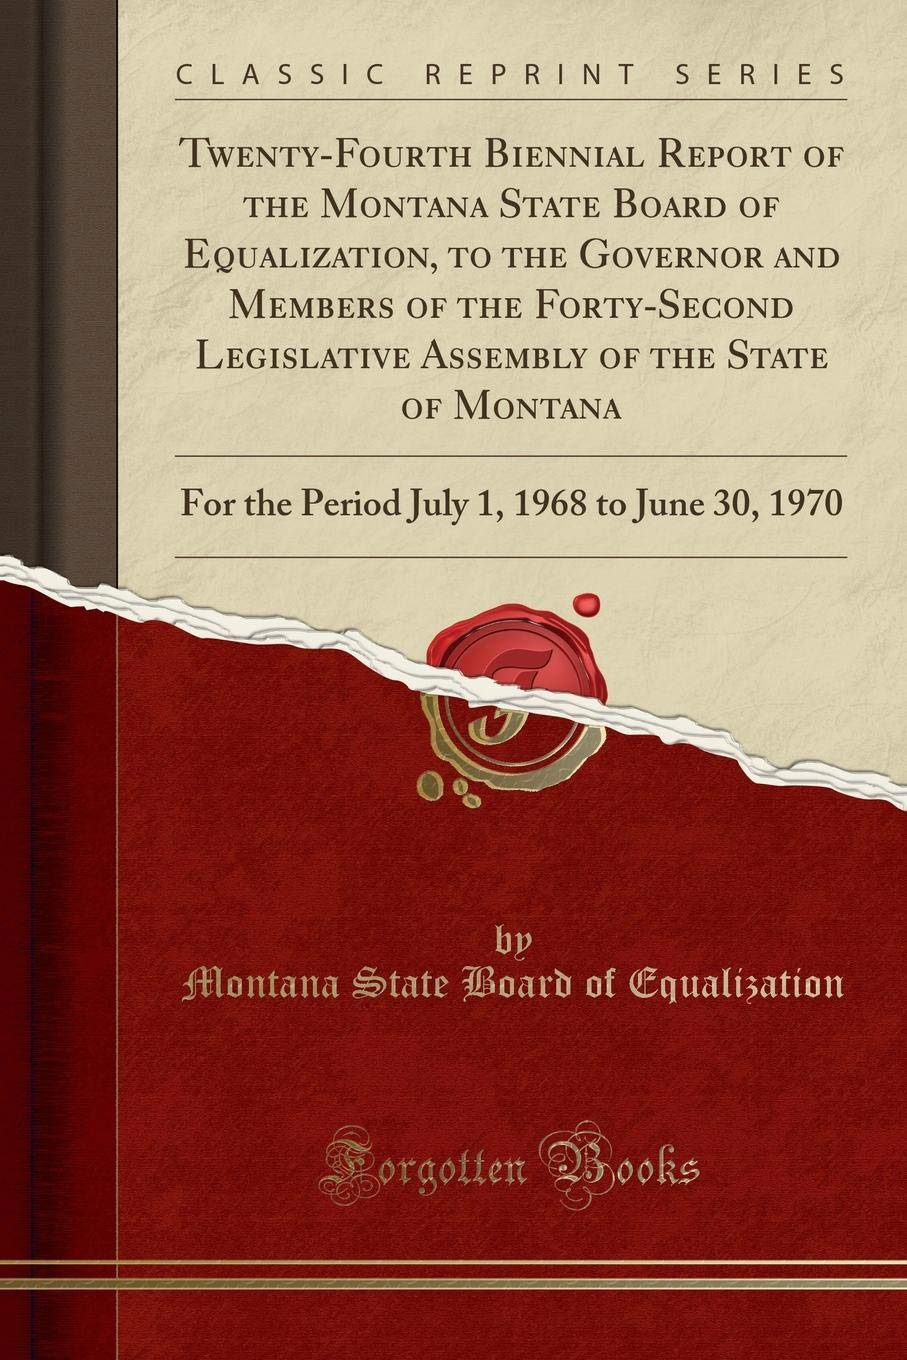 Twenty-Fourth Biennial Report of the Montana State Board of Equalization, to the Governor and Members of the Forty-Second Legislative Assembly of the ... 1, 1968 to June 30, 1970 (Classic Reprint) pdf